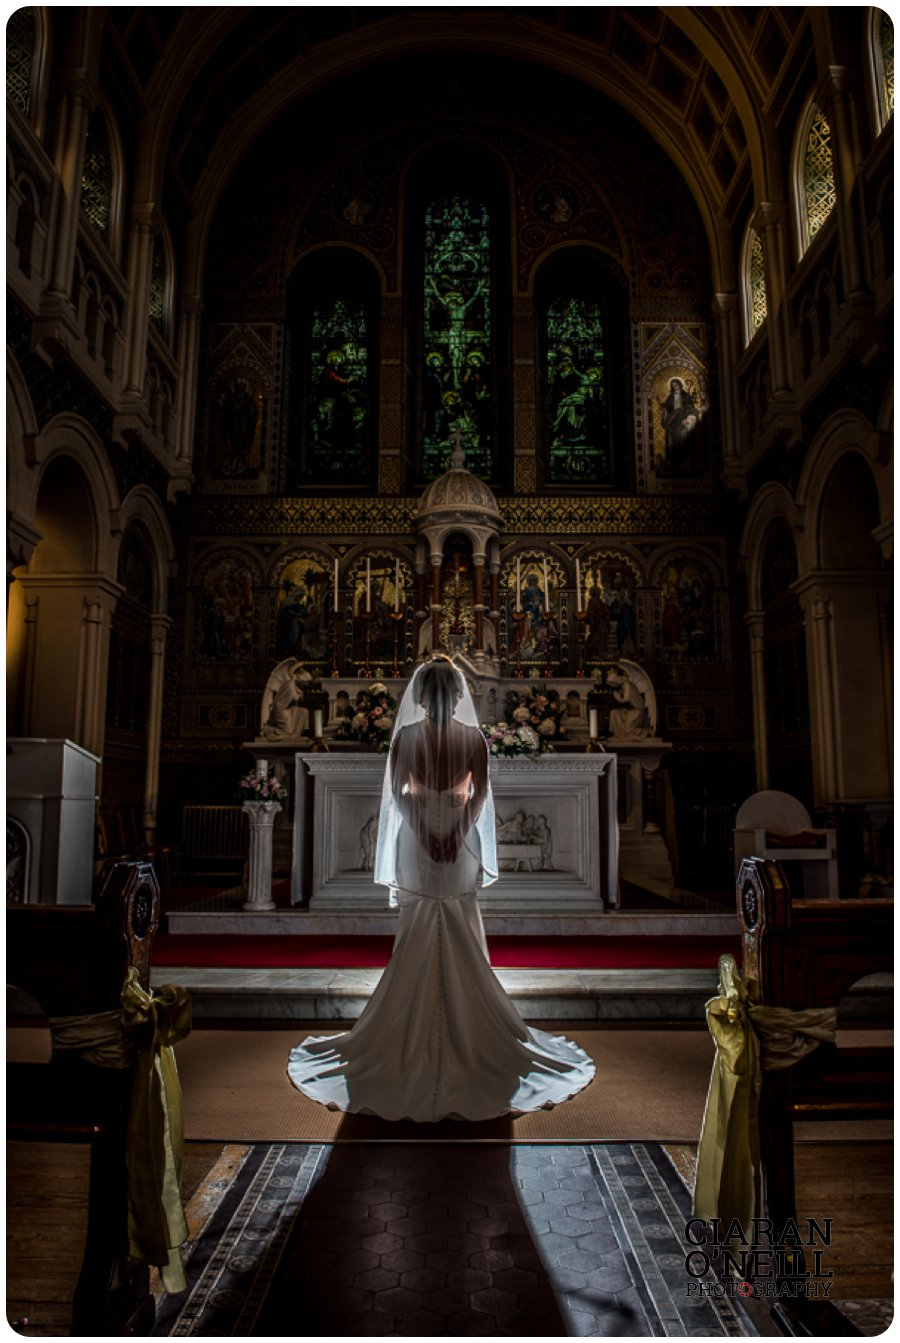 Jacqueline & Keith's wedding at Darver Castle by Ciaran O'Neill Photography 13